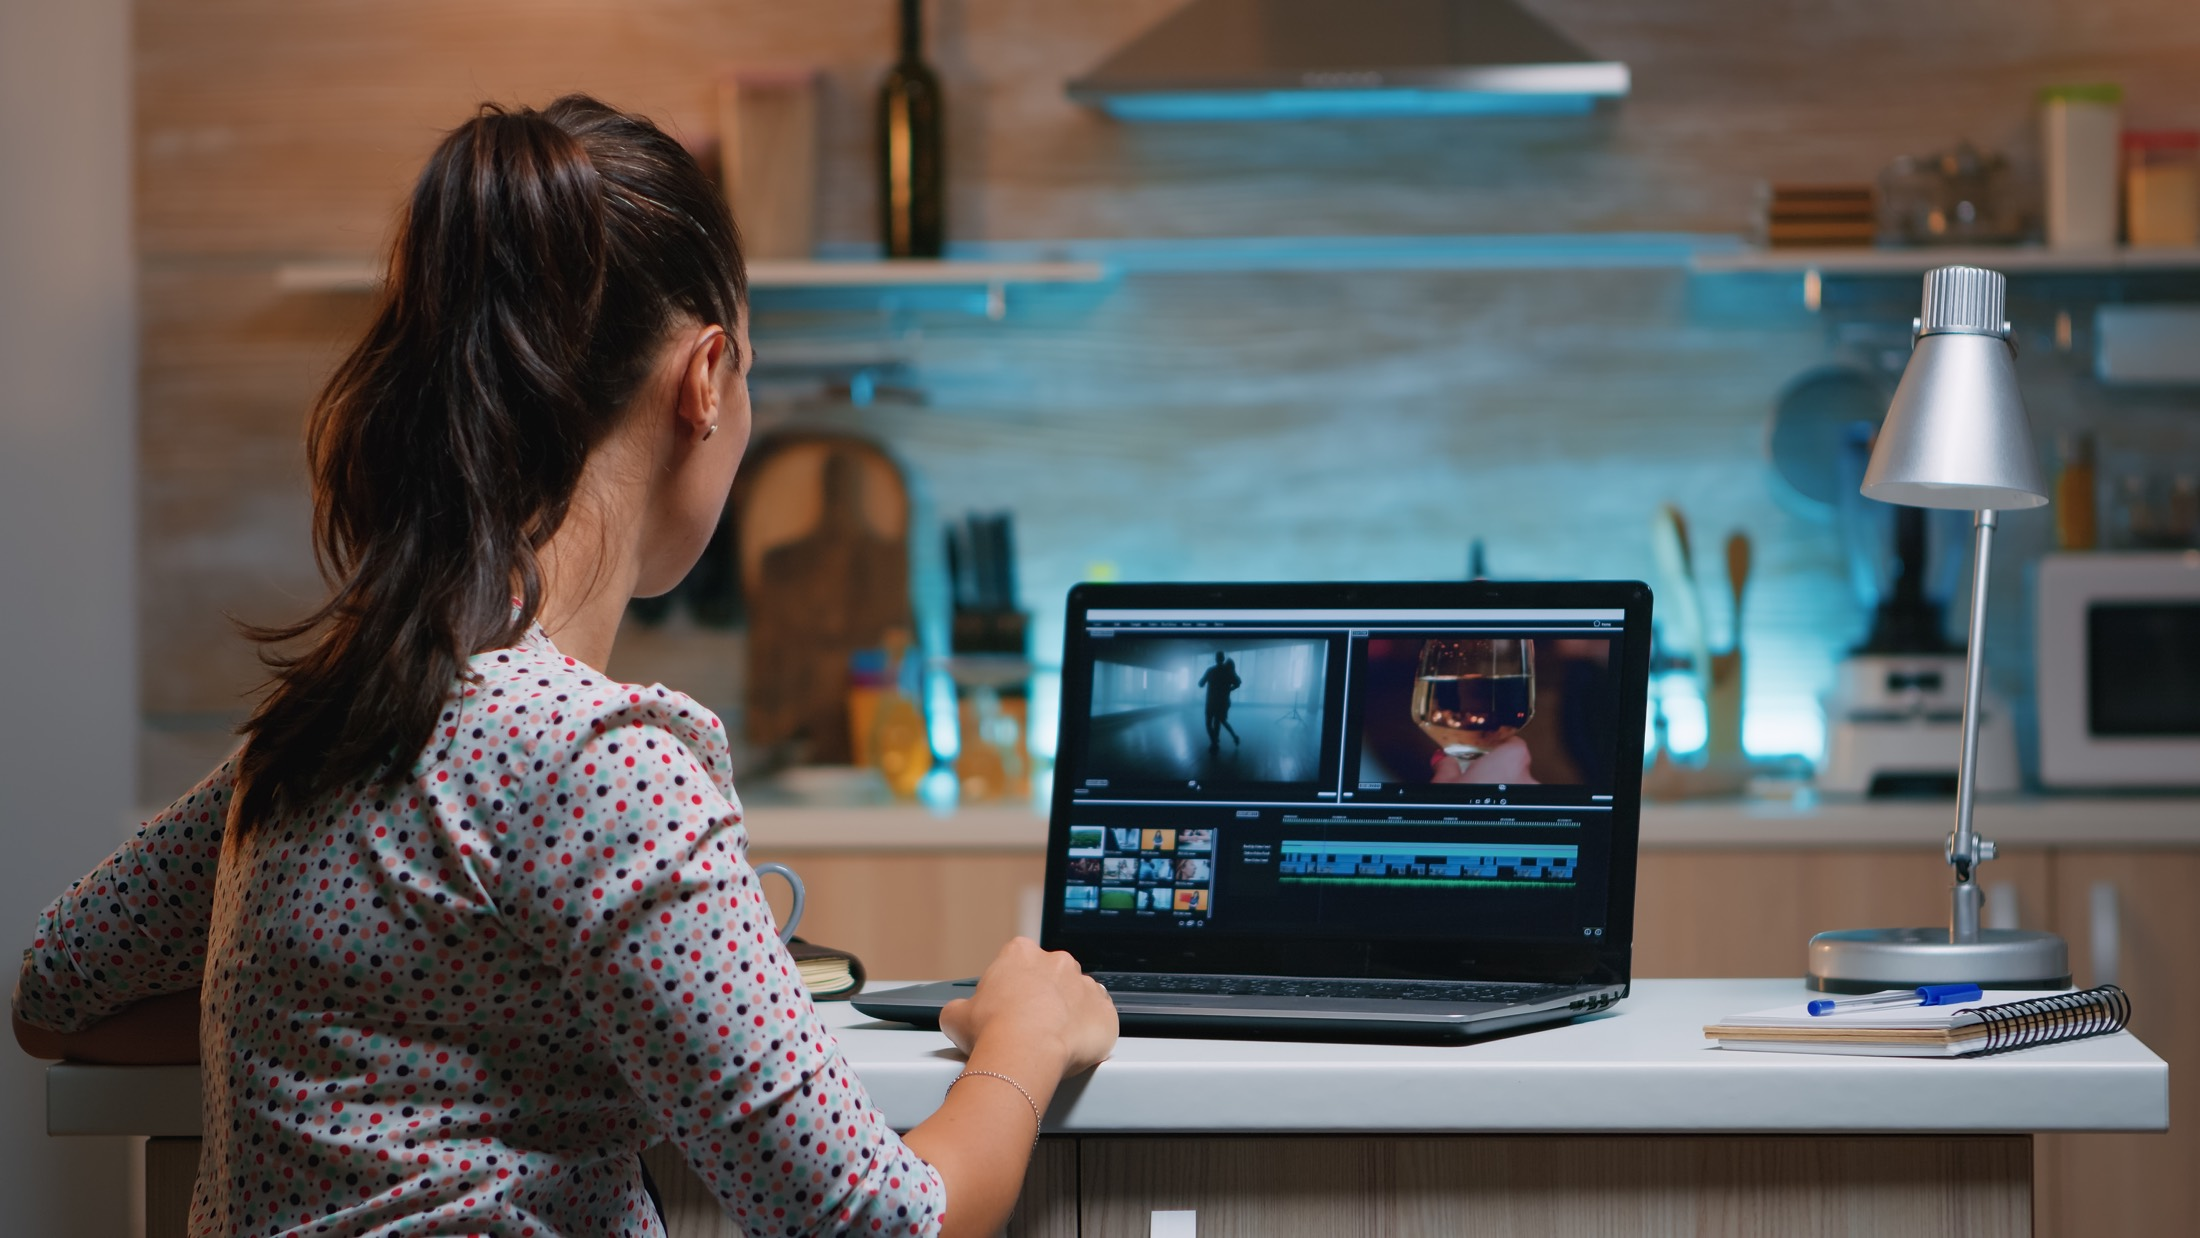 Side Hustle: Starting as a Freelance Video Editor in 2021